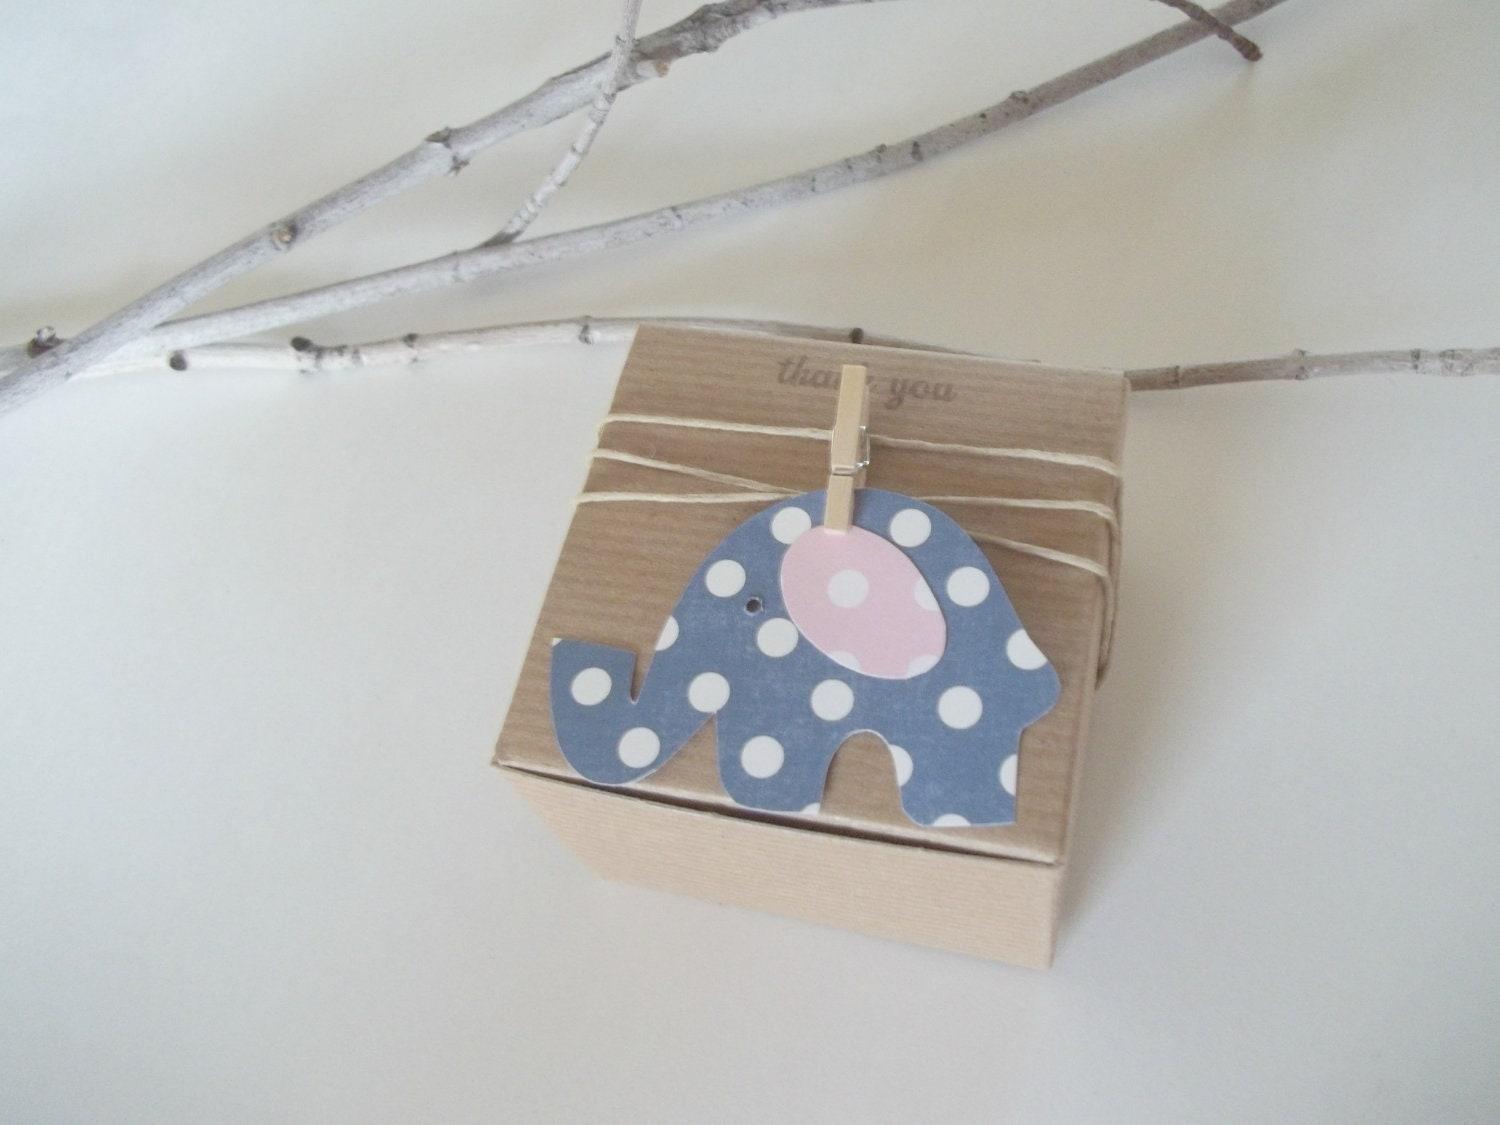 25 baby shower favor boxes navy pink polka dot elephant 3x3x2 inch